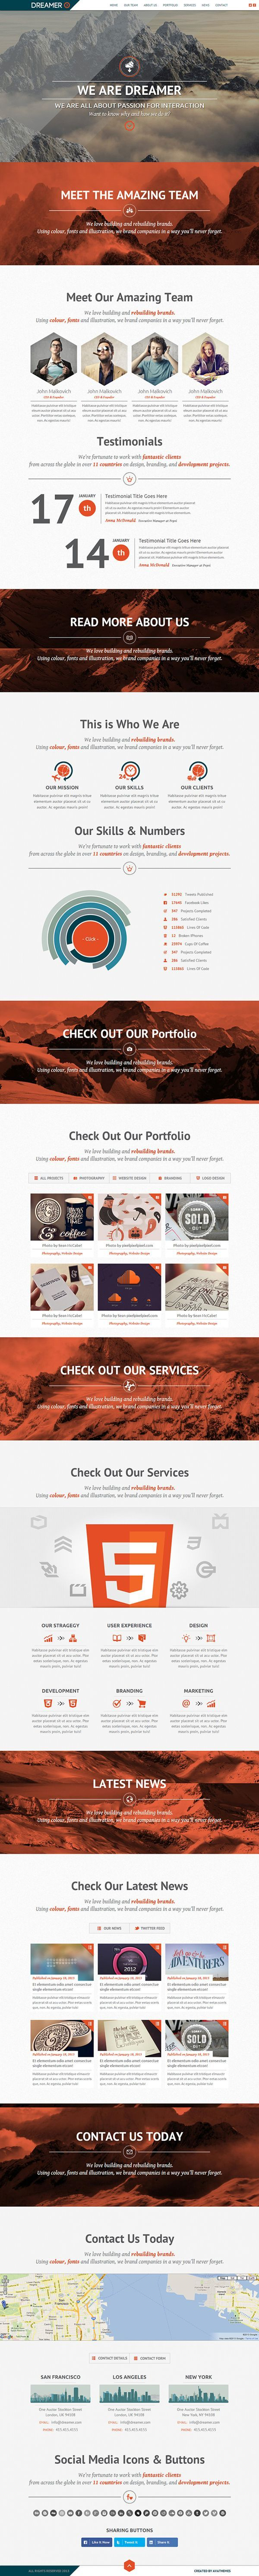 Parallax Website Template Dreamer  Parallax Websites  Pinterest  Website Designs Website